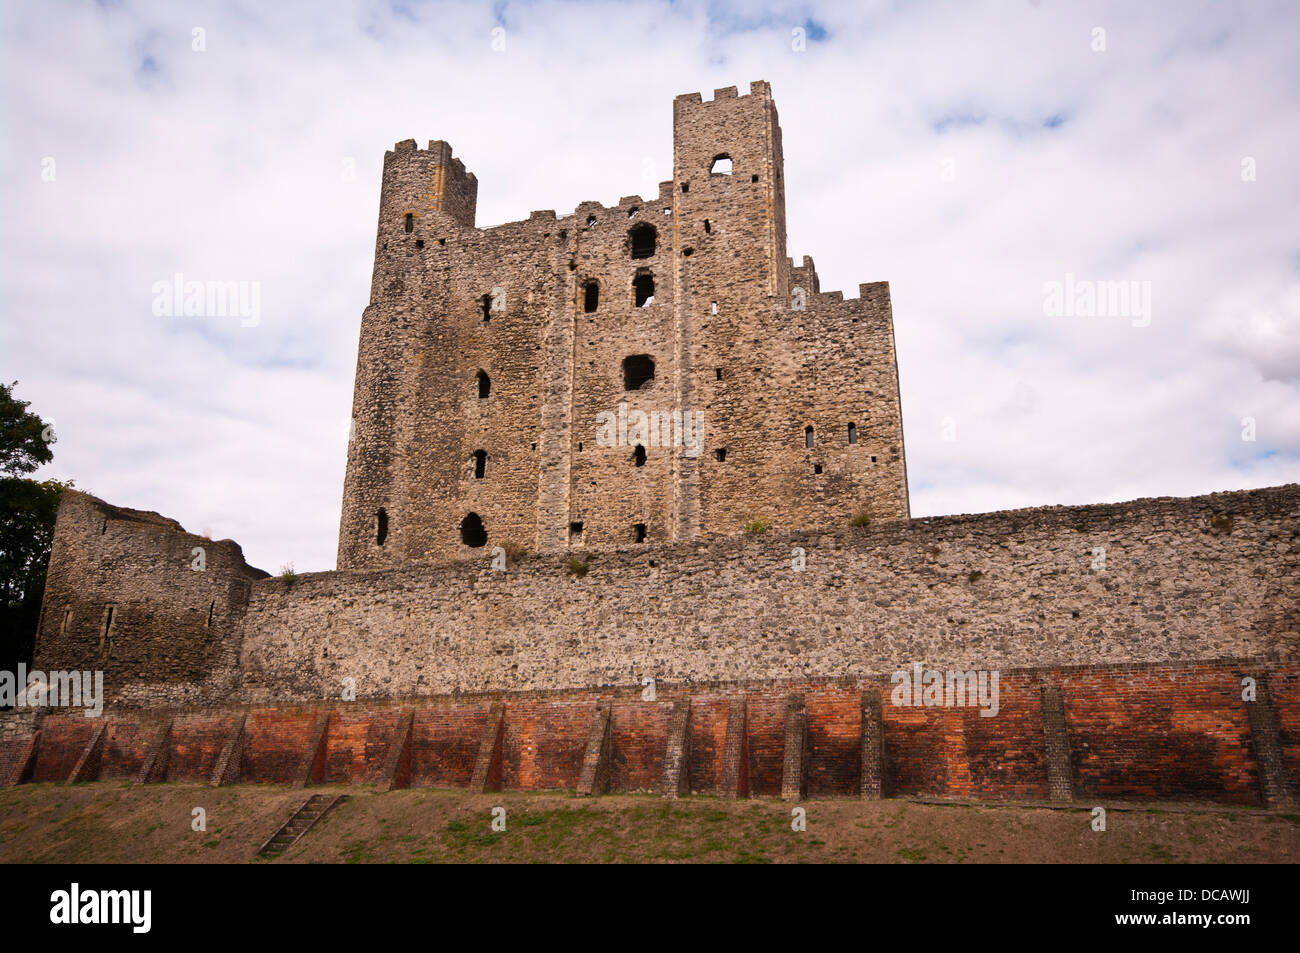 Rochester Castle In The Medway Town City Of Rochester Kent England UK - Stock Image